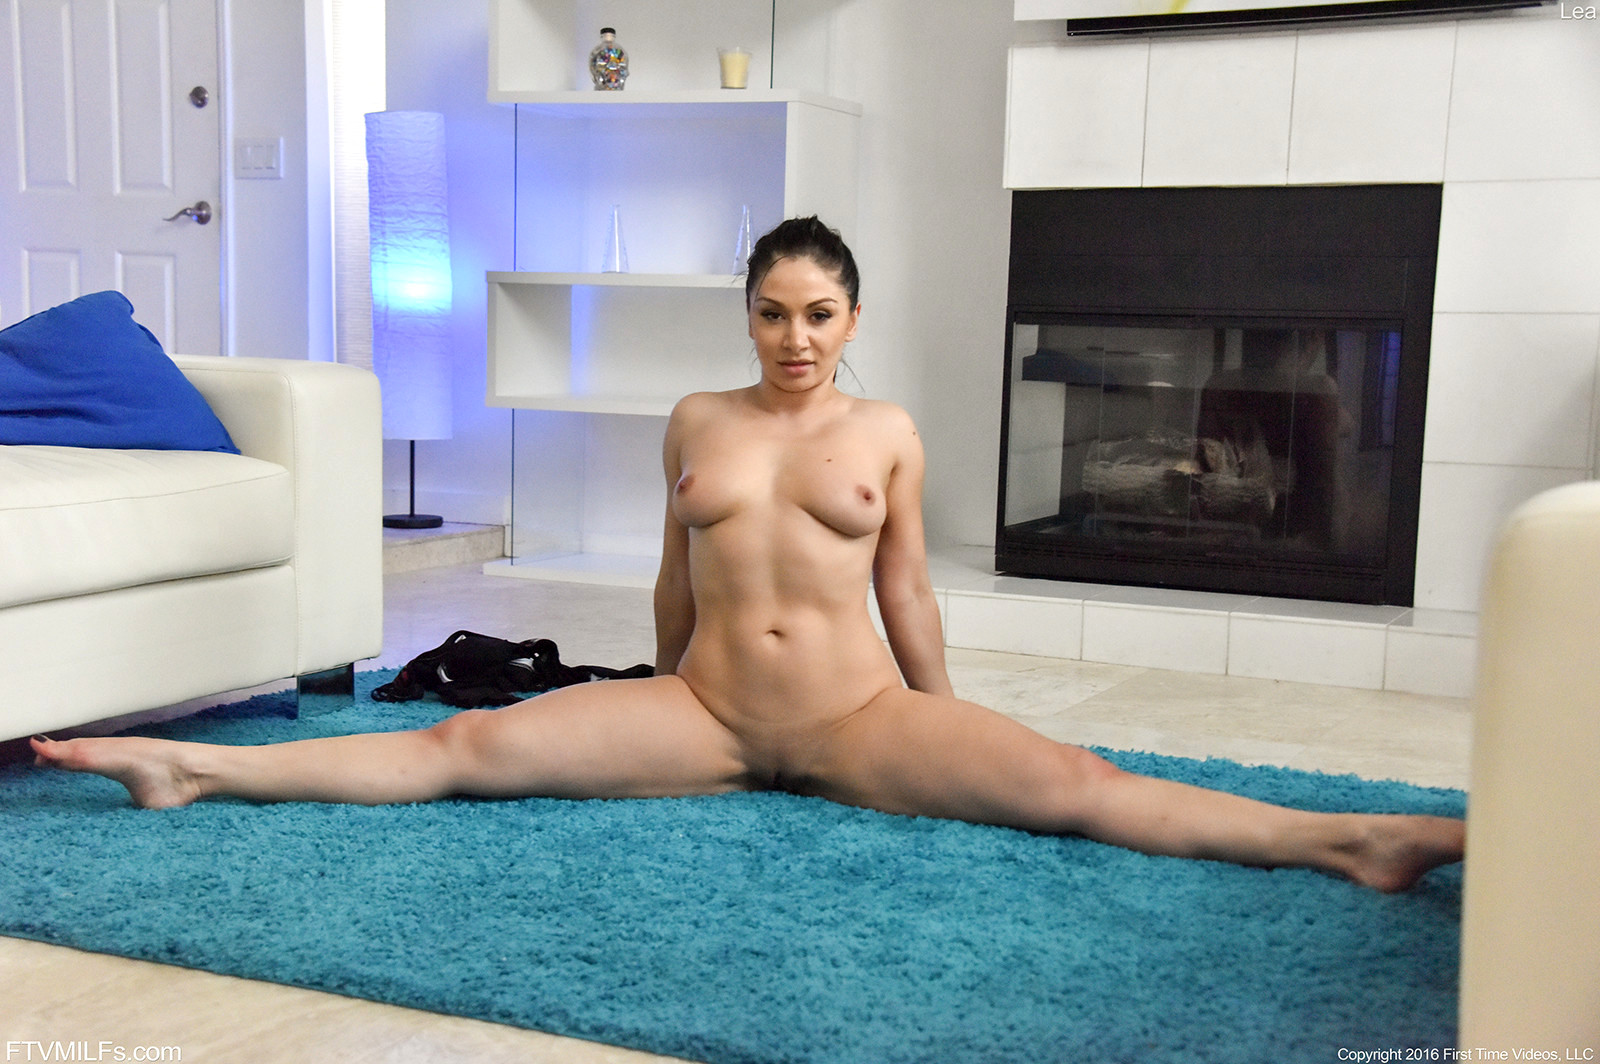 Propertysex fine ass real estate agent fucks home owner 1